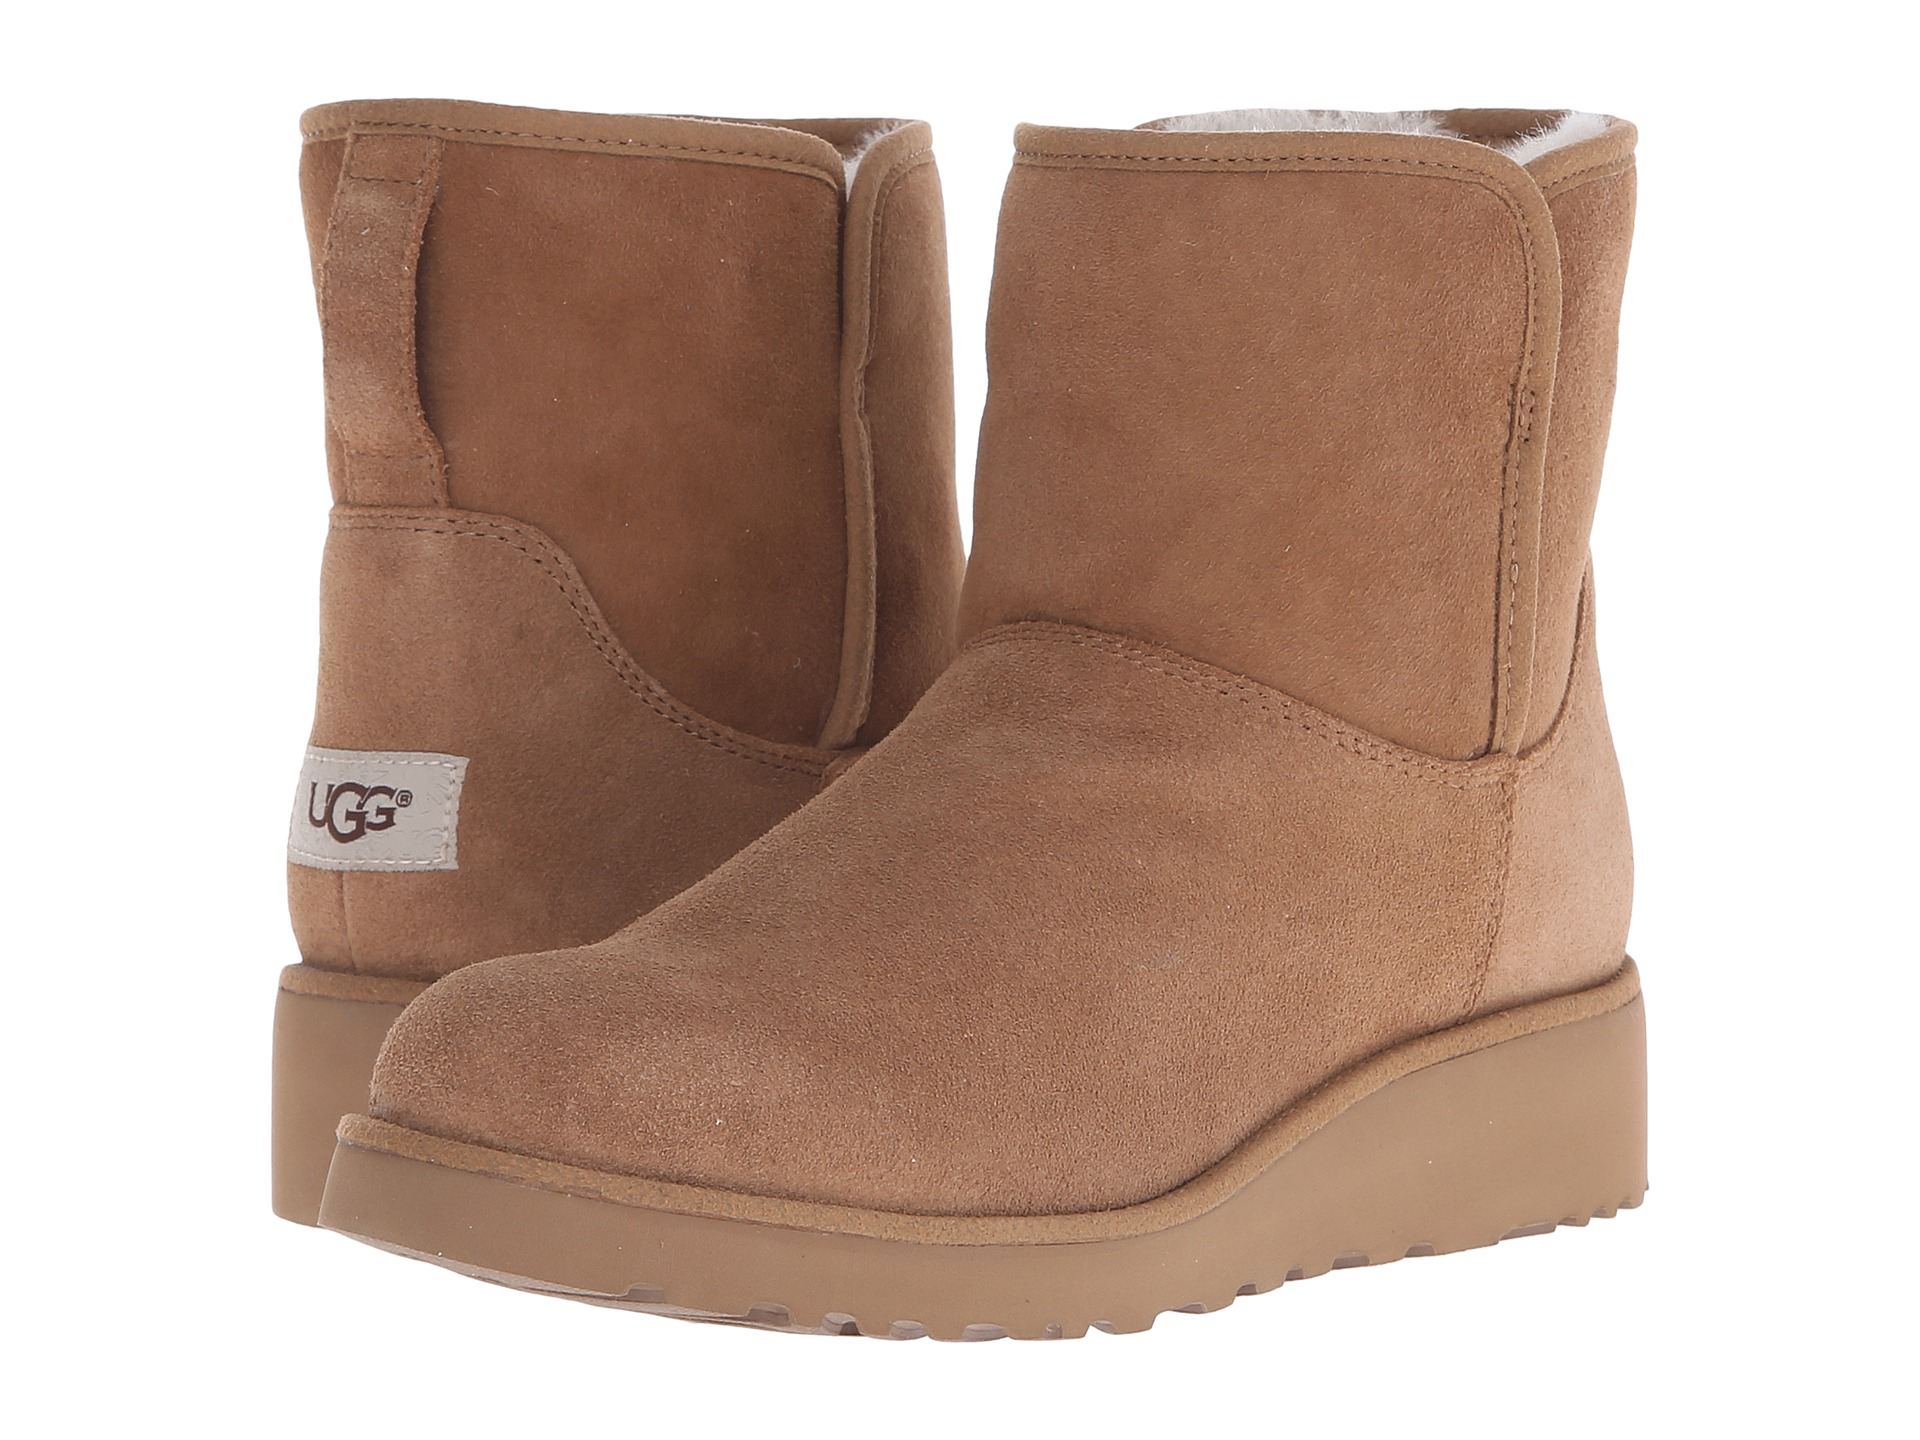 zappos ugg sale boots. Black Bedroom Furniture Sets. Home Design Ideas